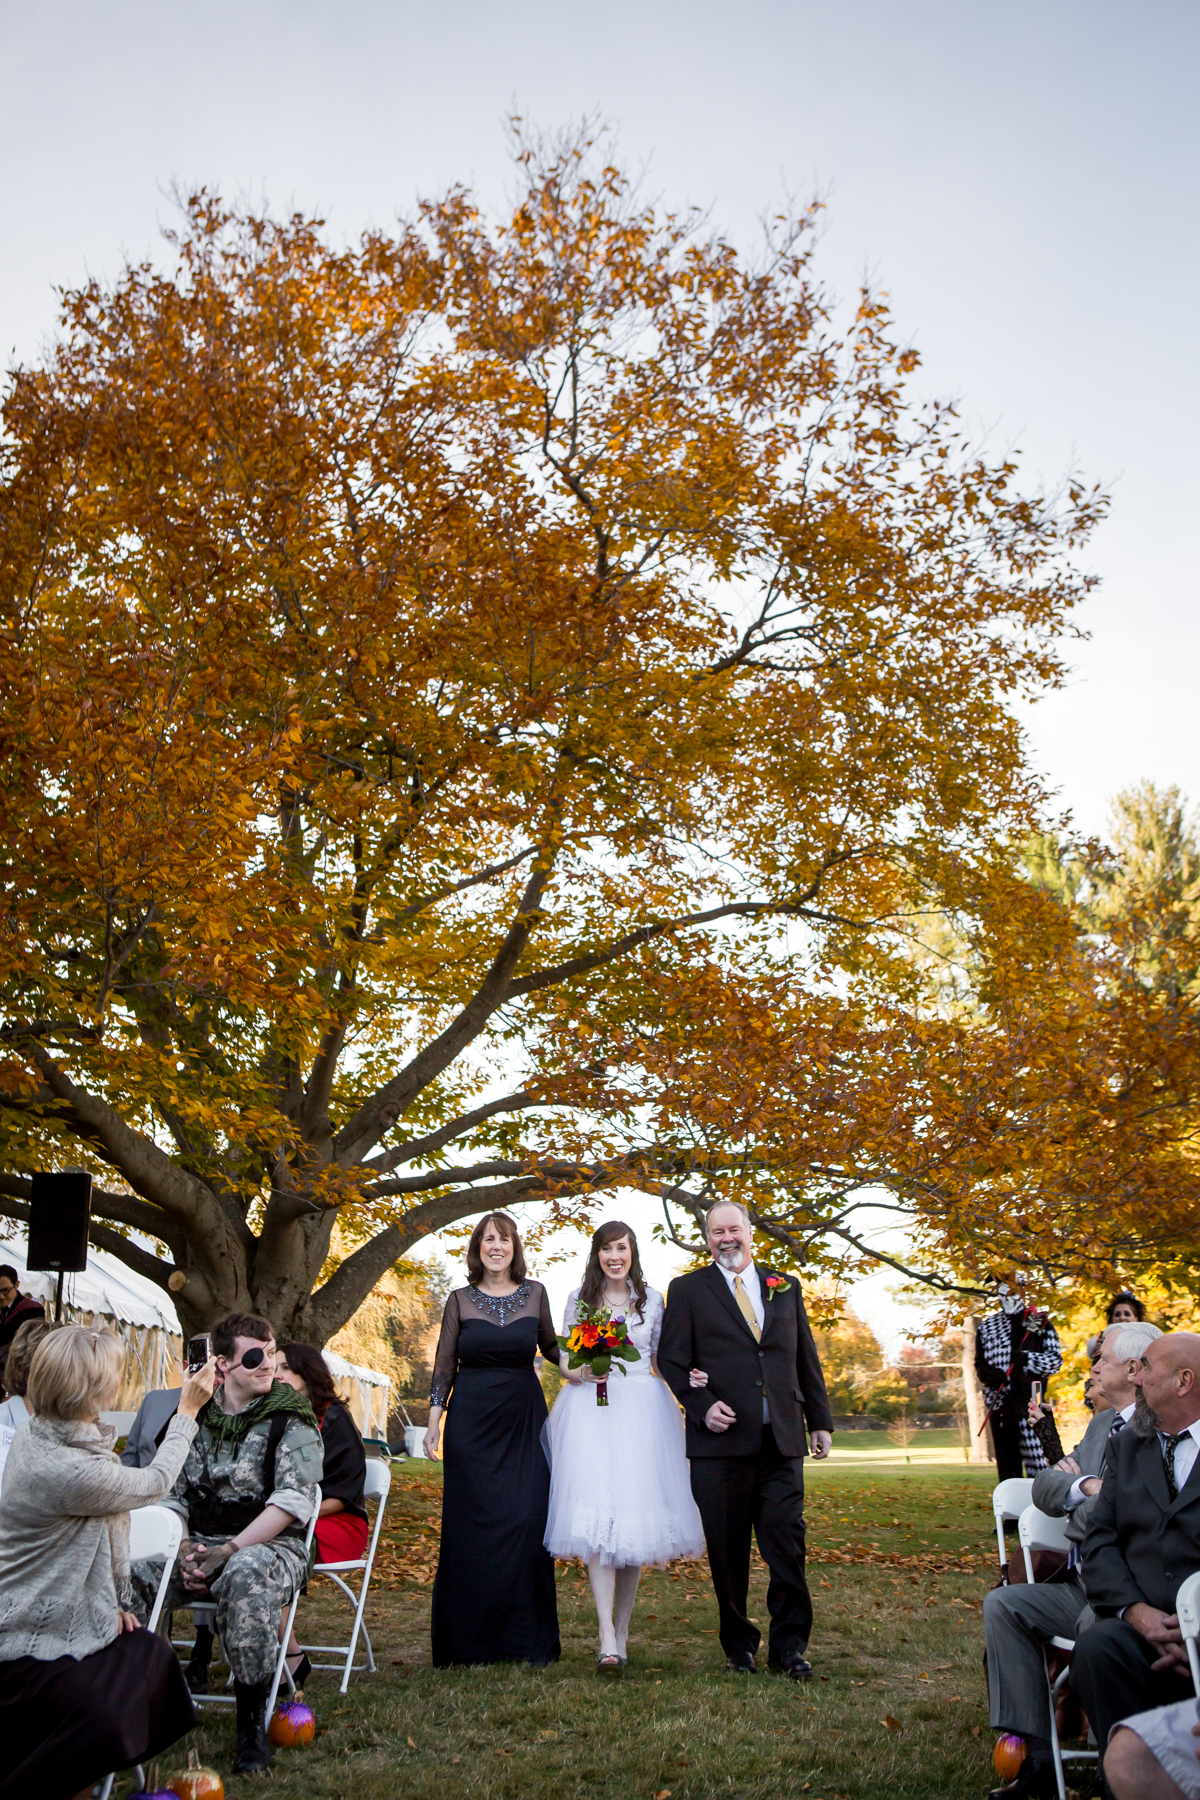 Gary Young Photograpy| pierce-house-wedding-mcinerney-39.jpg